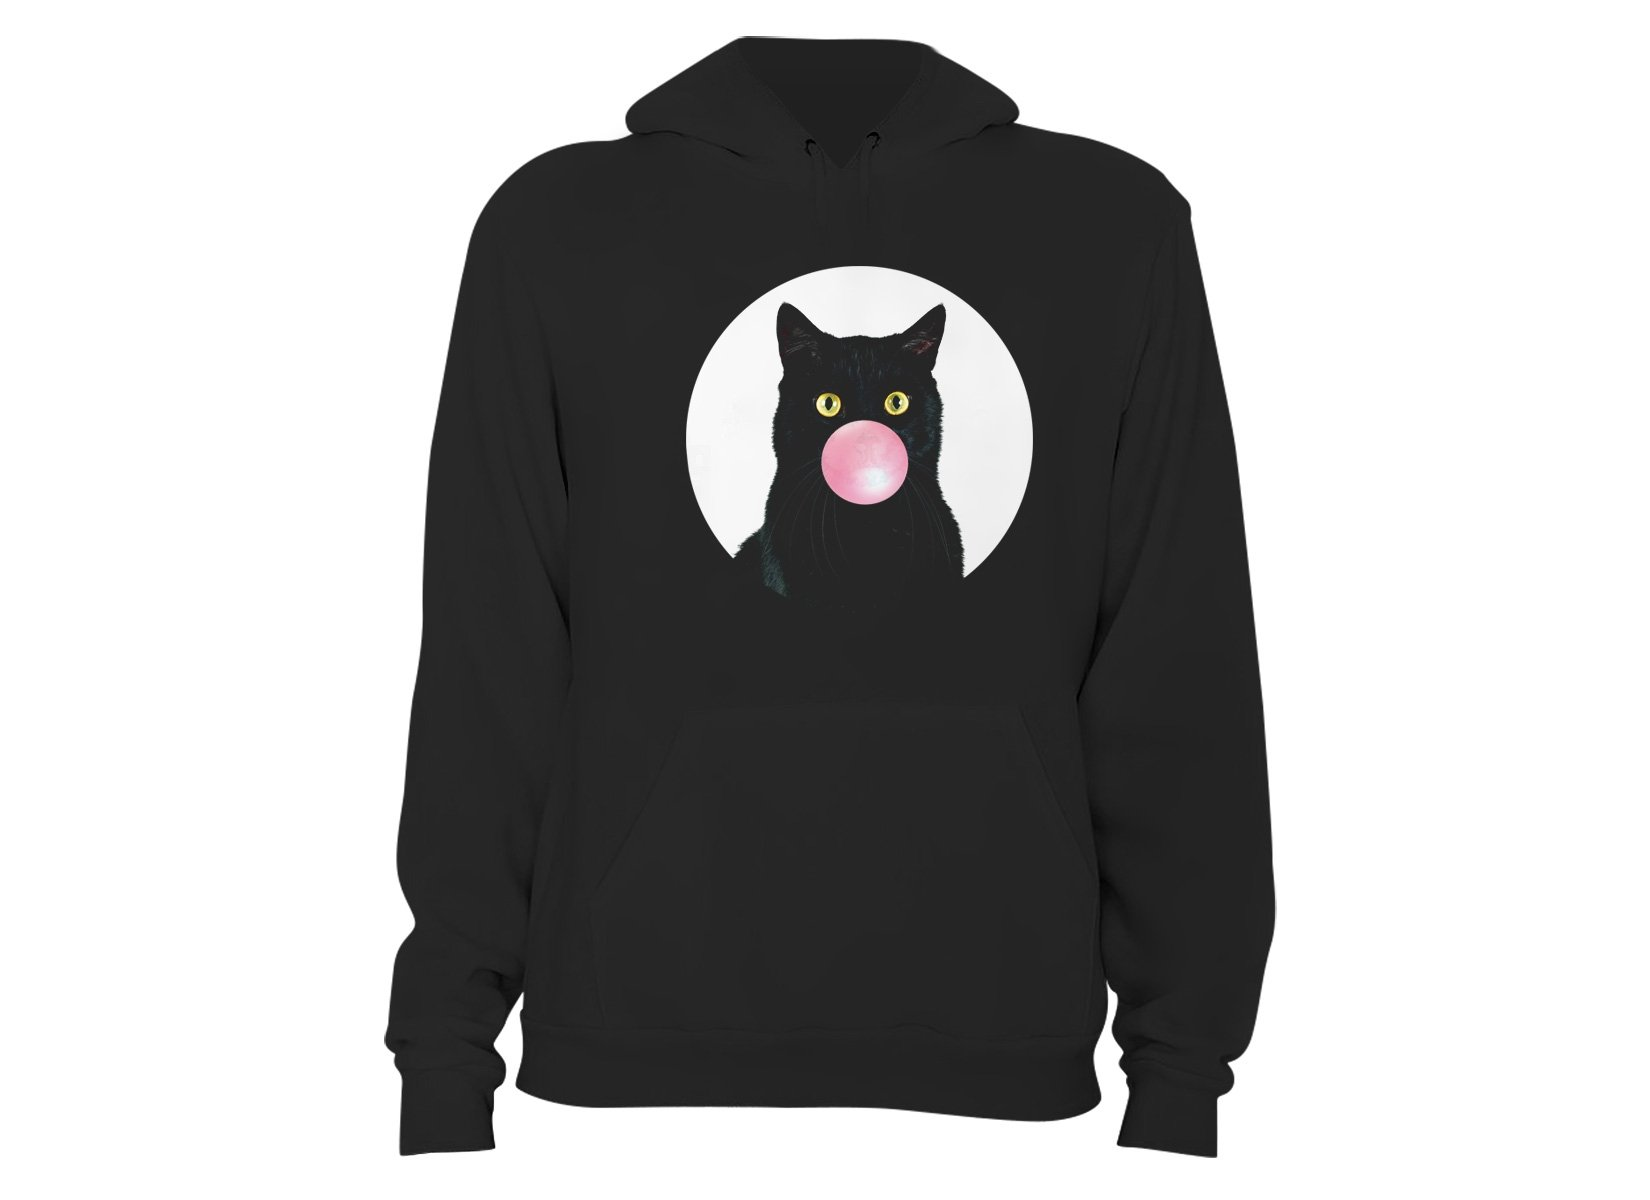 Bubble Cat on Hoodie